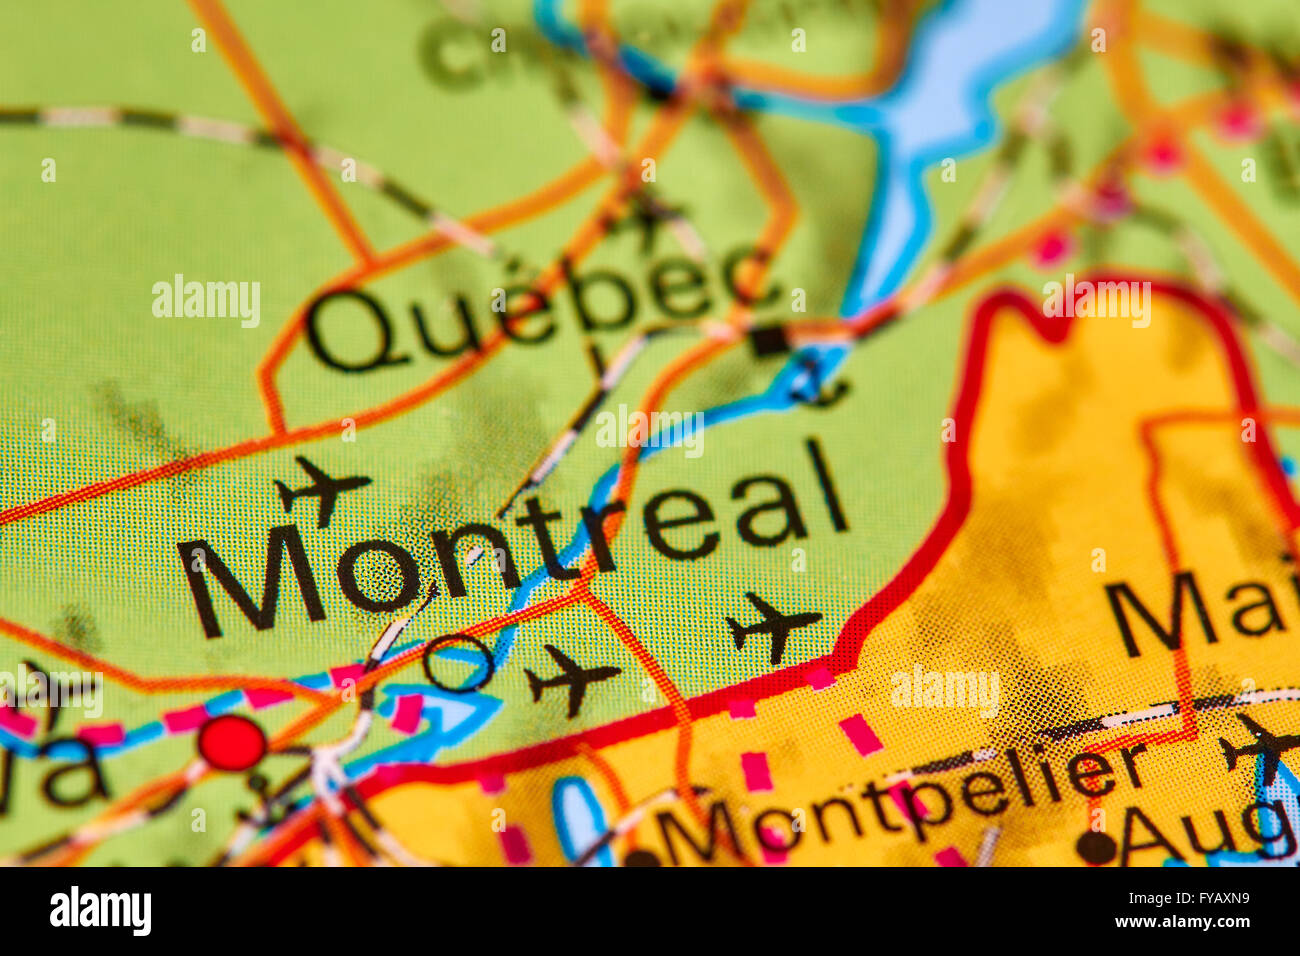 Montreal Map Stock Photos & Montreal Map Stock Images - Alamy on old montreal map, montreal underground city shopping map, phoenix arizona map, calgary map, colonia juarez chihuahua mexico map, toronto map, montreal canada, montreal pop festival, halifax nova scotia map, sydney new south wales map, montreal ice hotel map, montreal trudeau airport map, vancouver map, victoria british columbia map, montreal people, campinas brazil map, montreal olympic stadium map, gaspe peninsula map, paris france map, canada map,